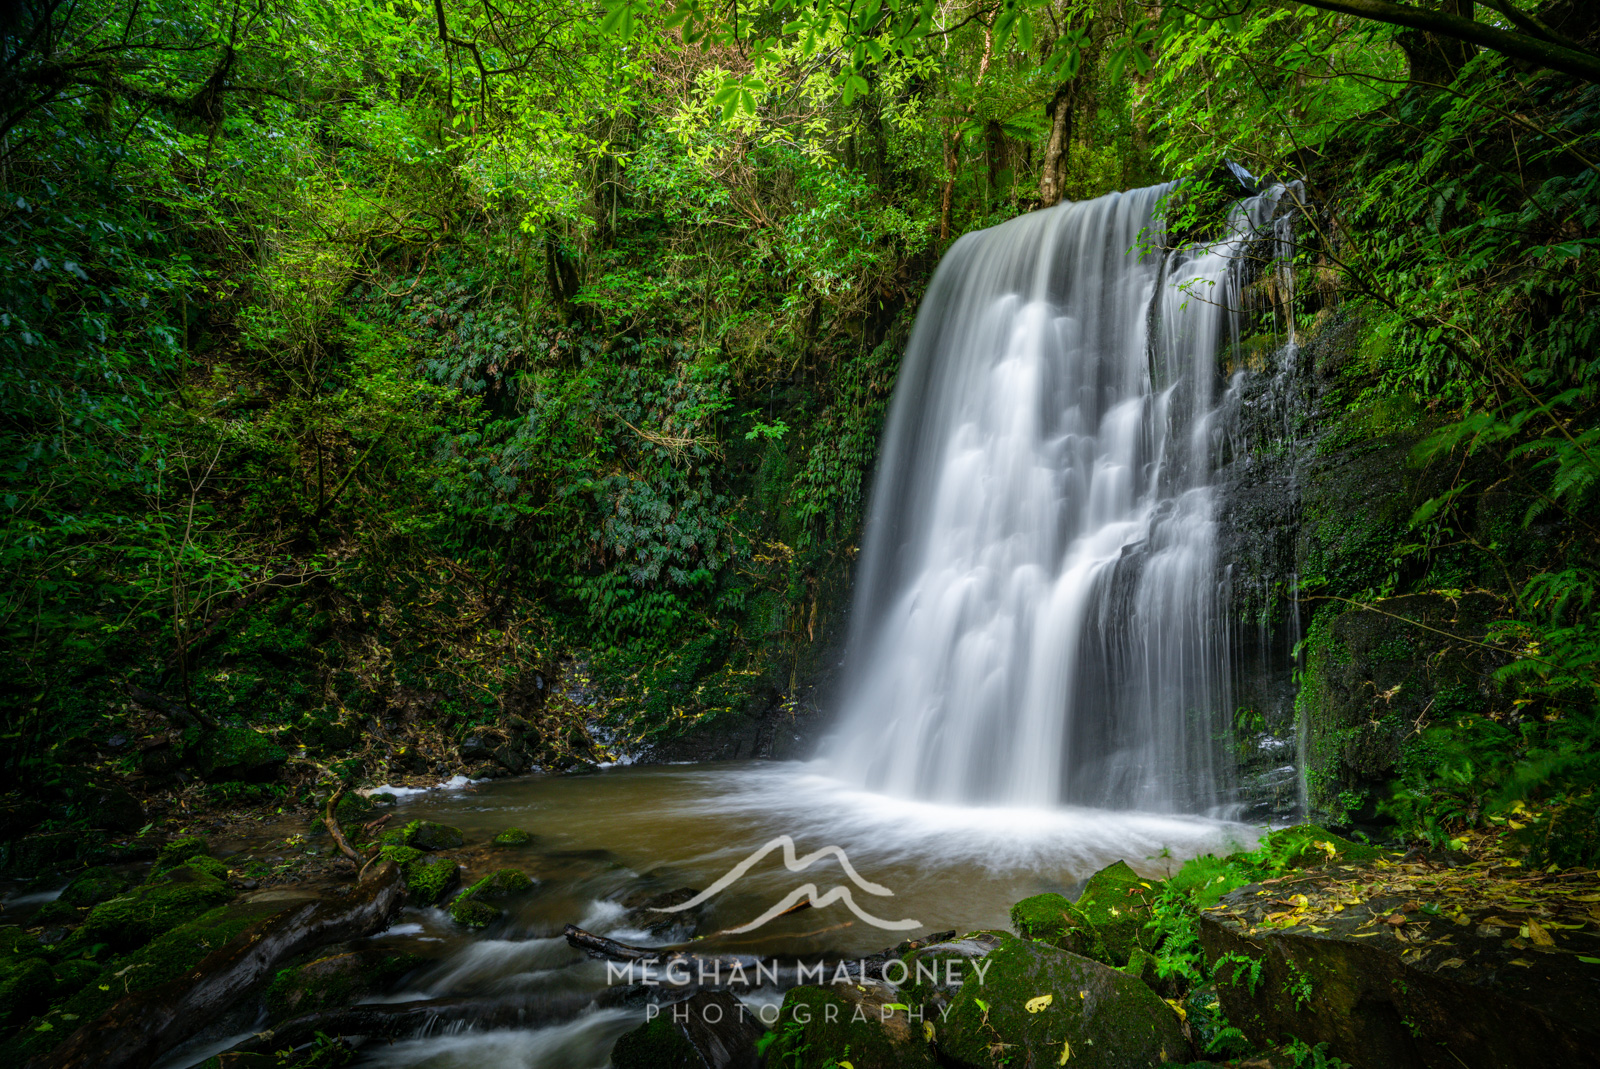 Catlins & Dunedin Landscape Photography